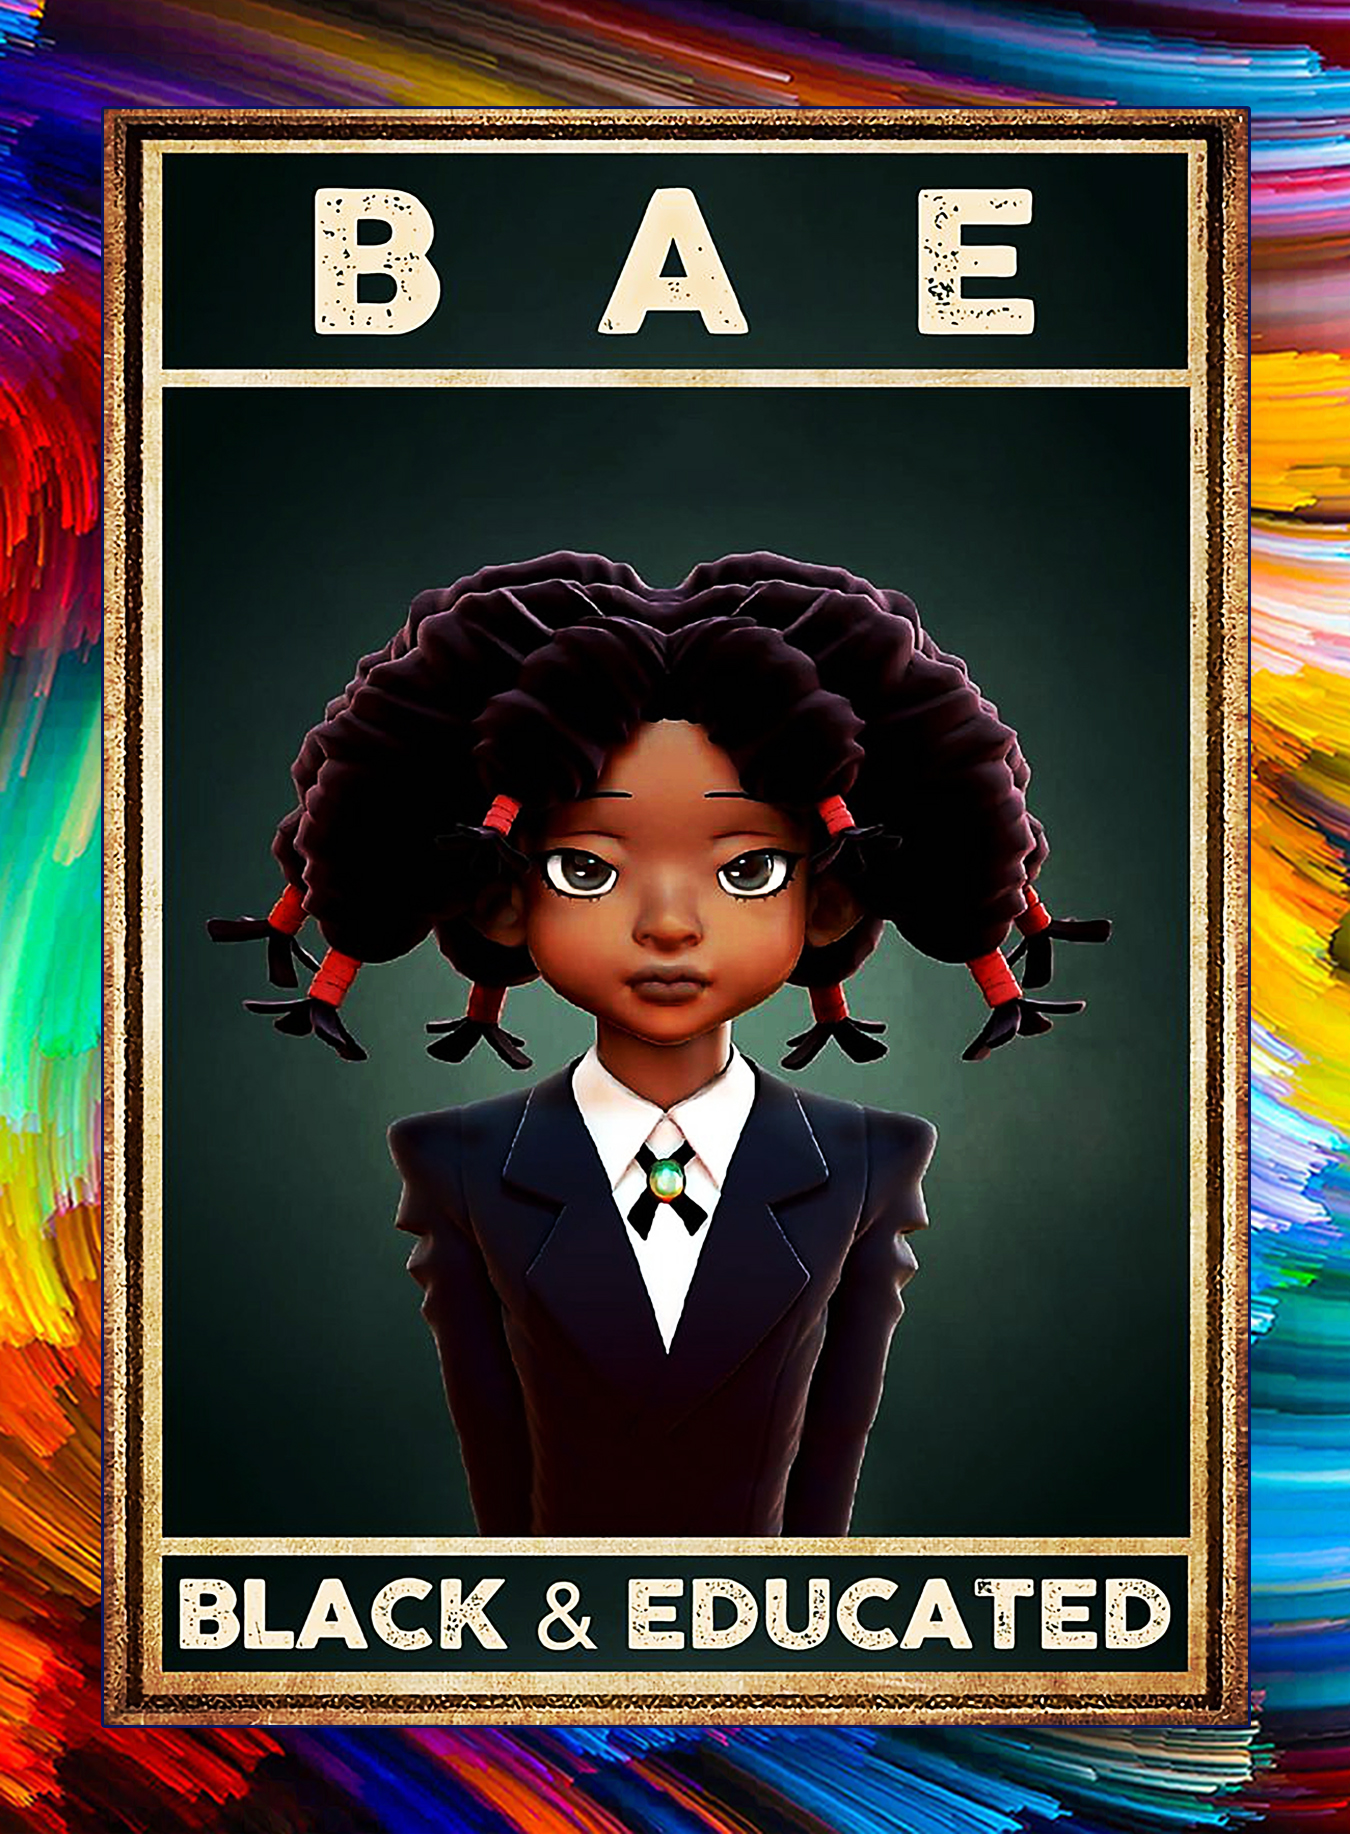 Black and educated poster - A3